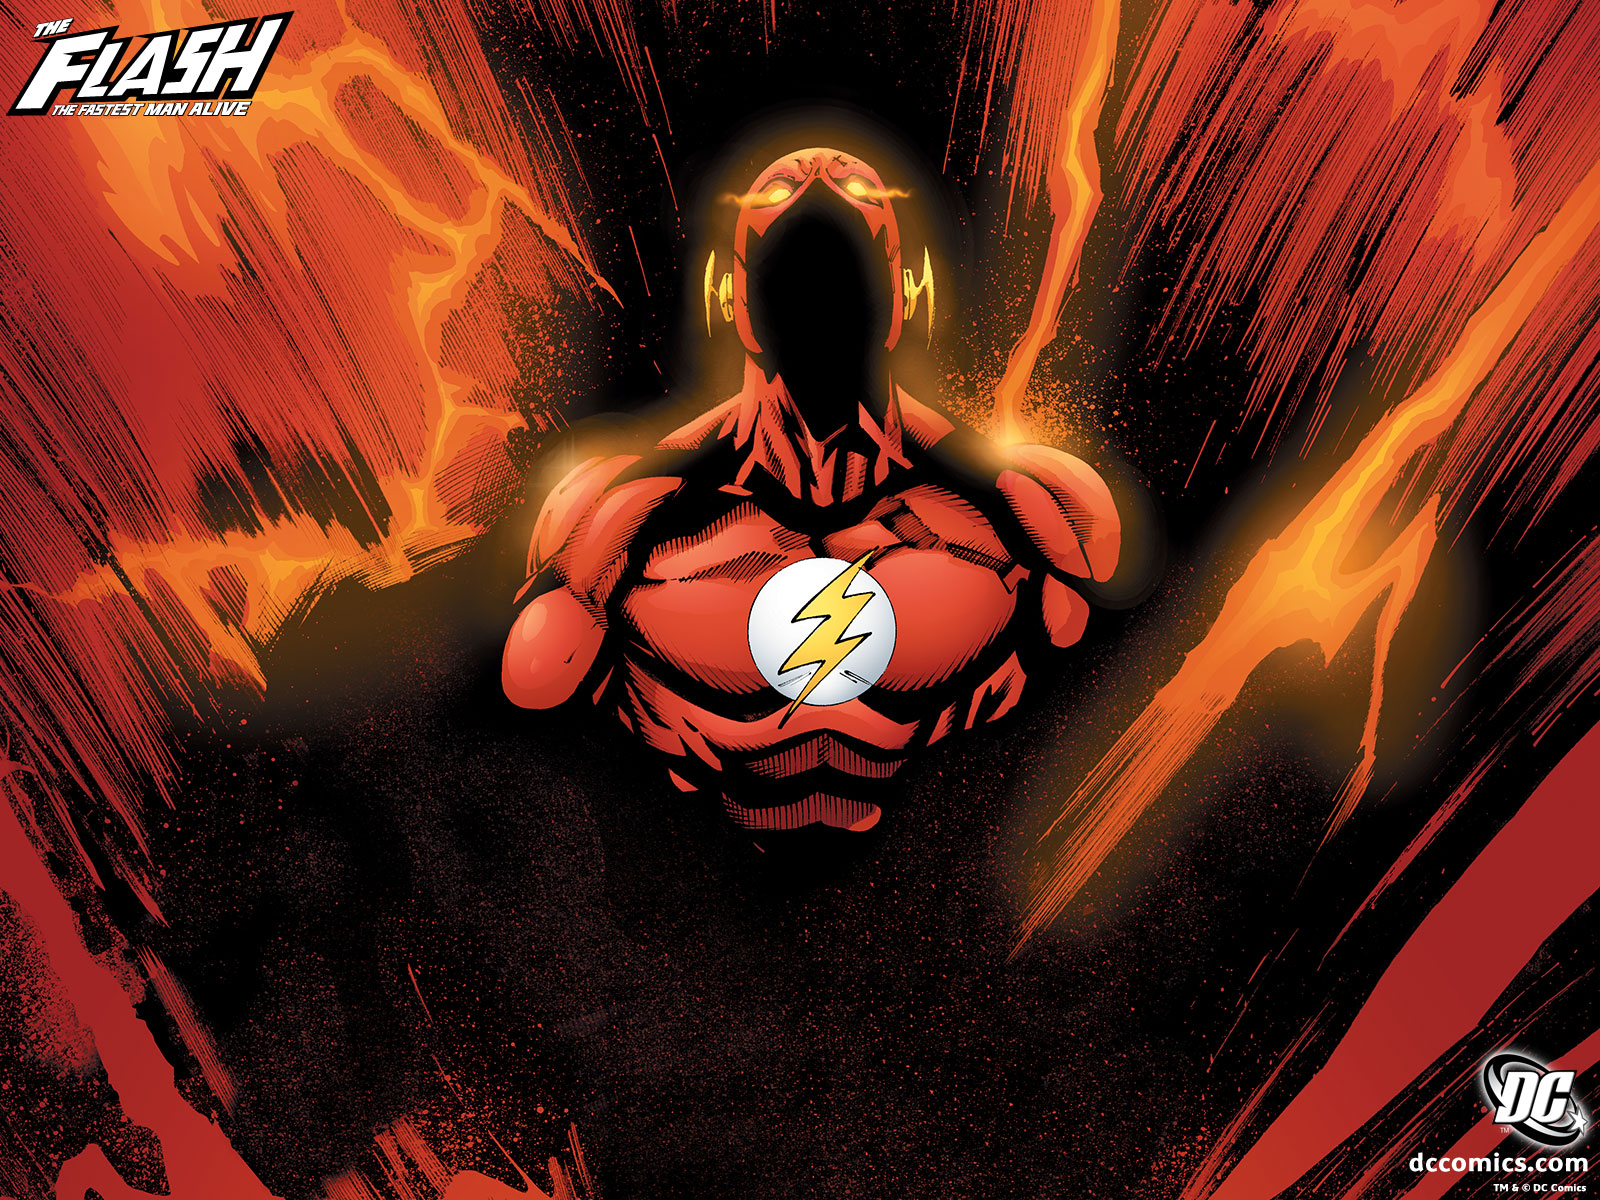 The Flash desktop wallpaper 1600x1200